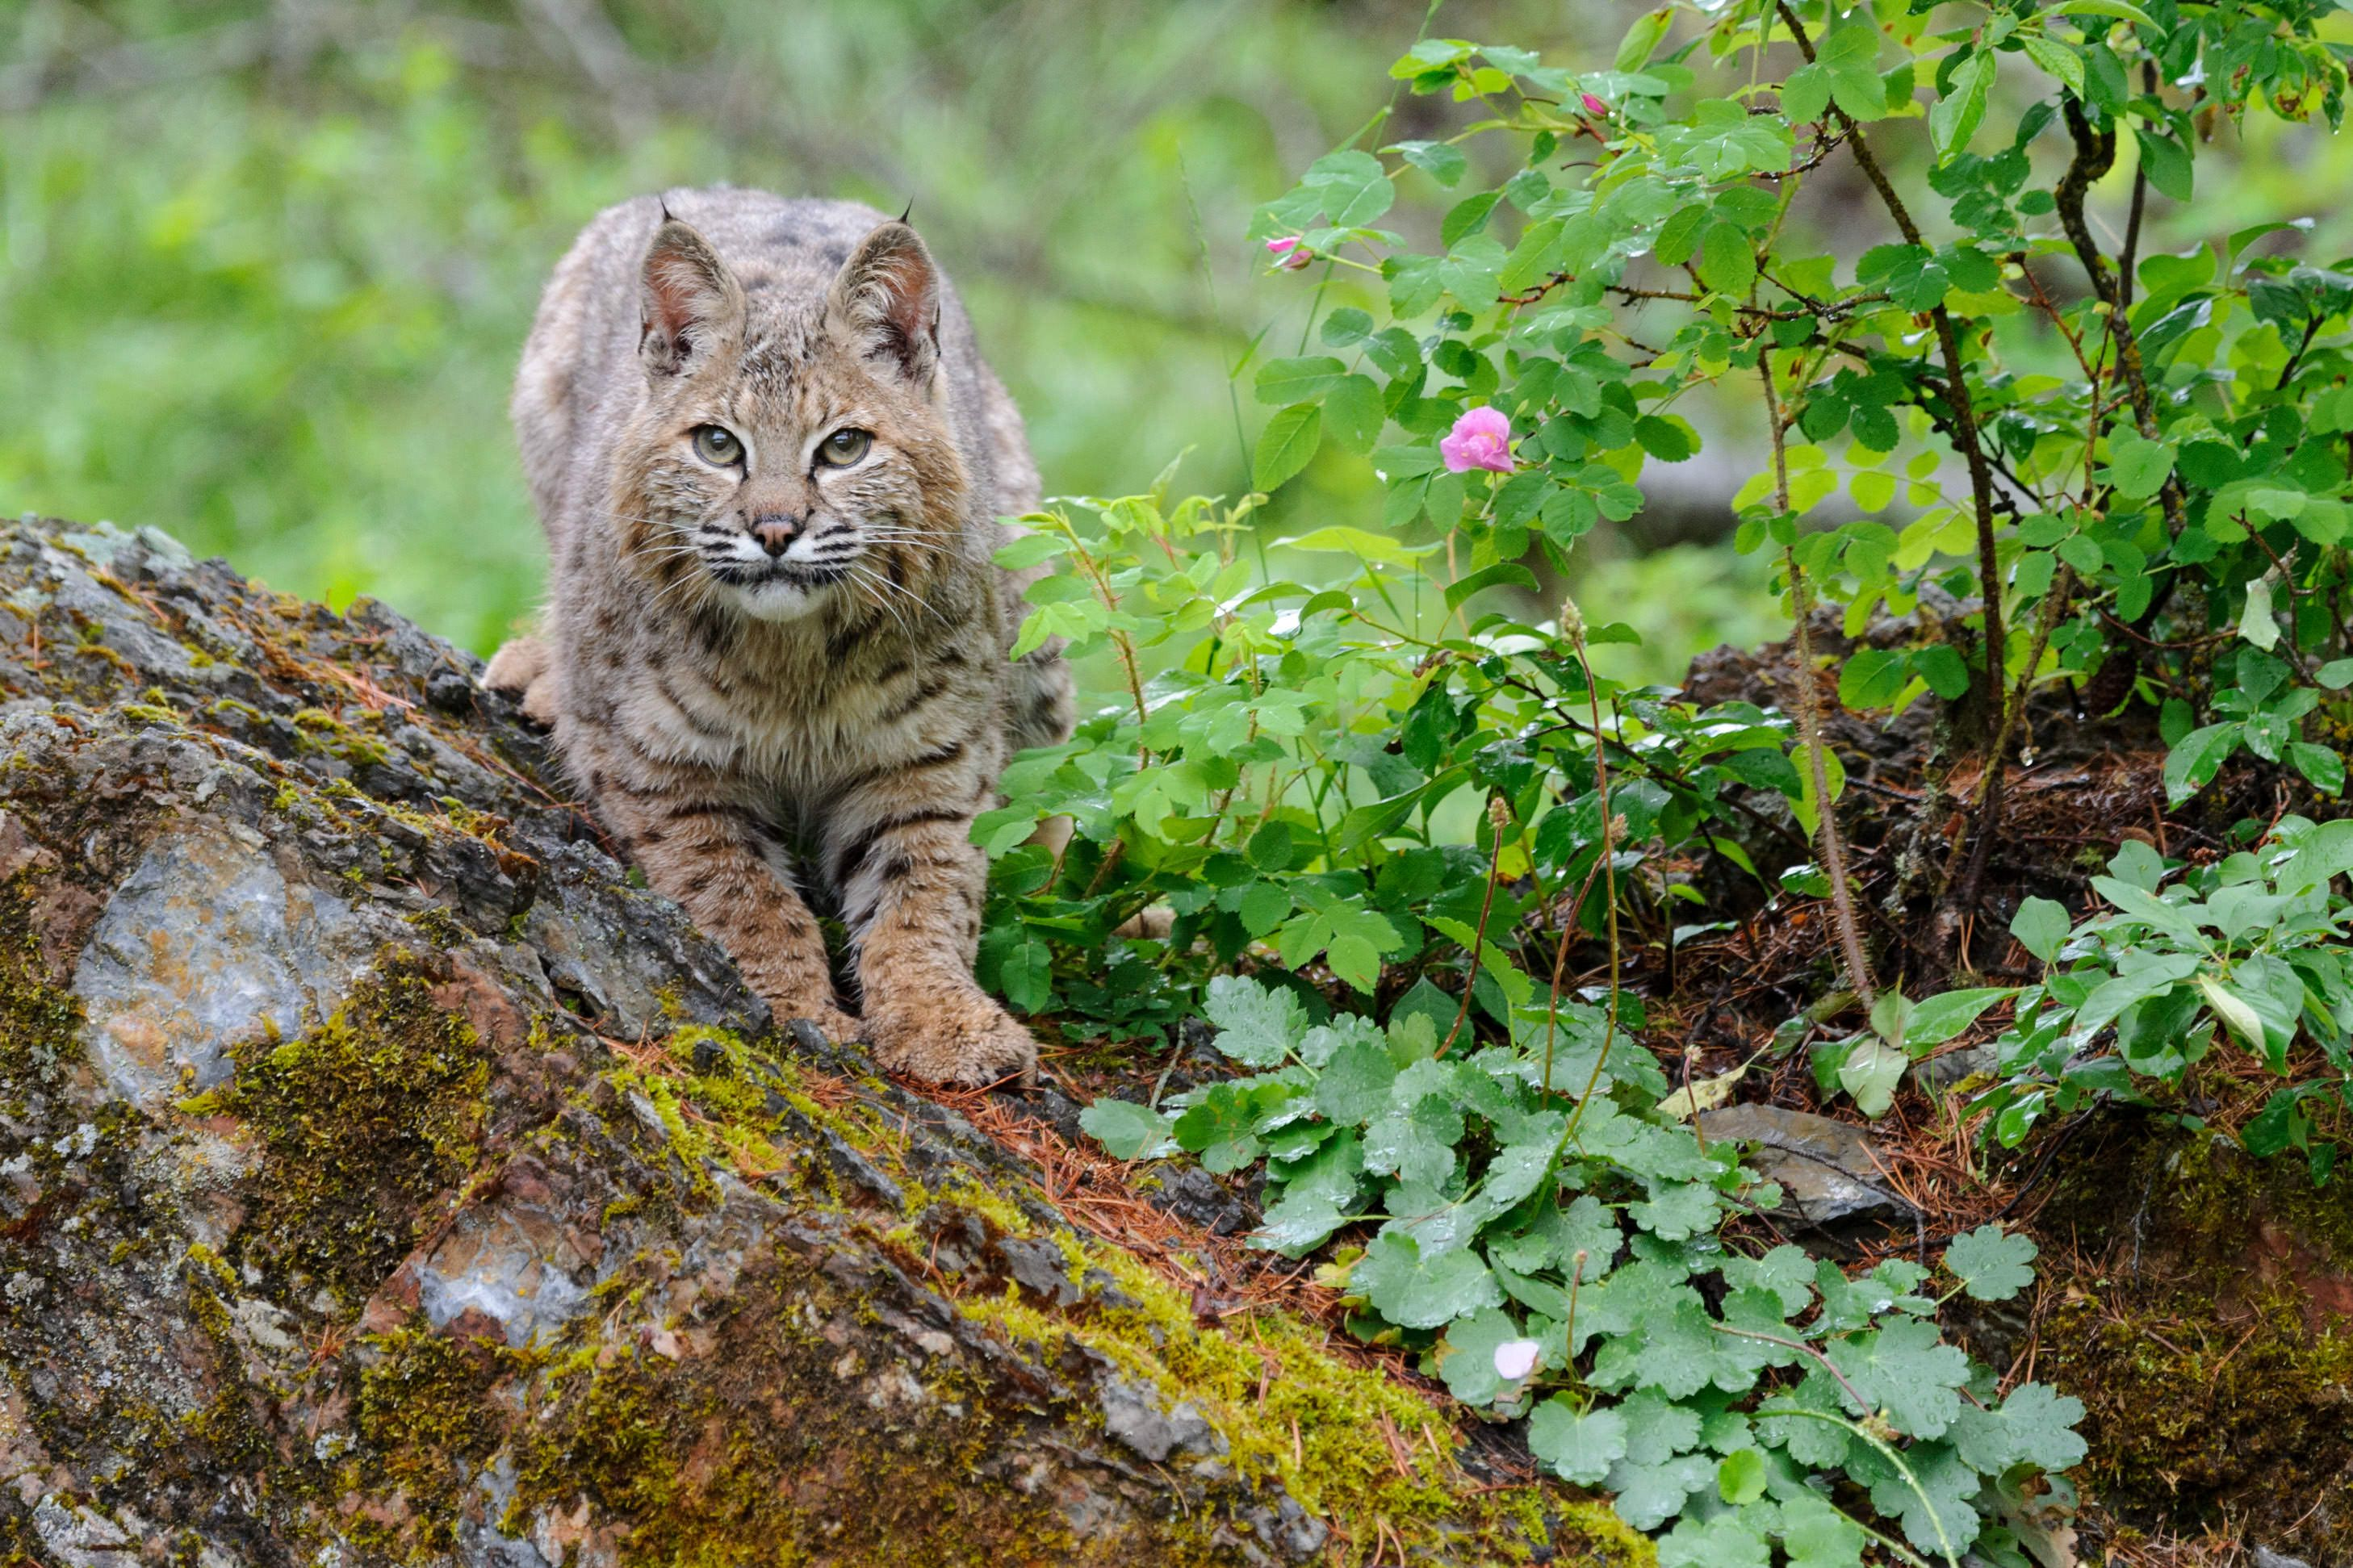 a bobcat perched in tree